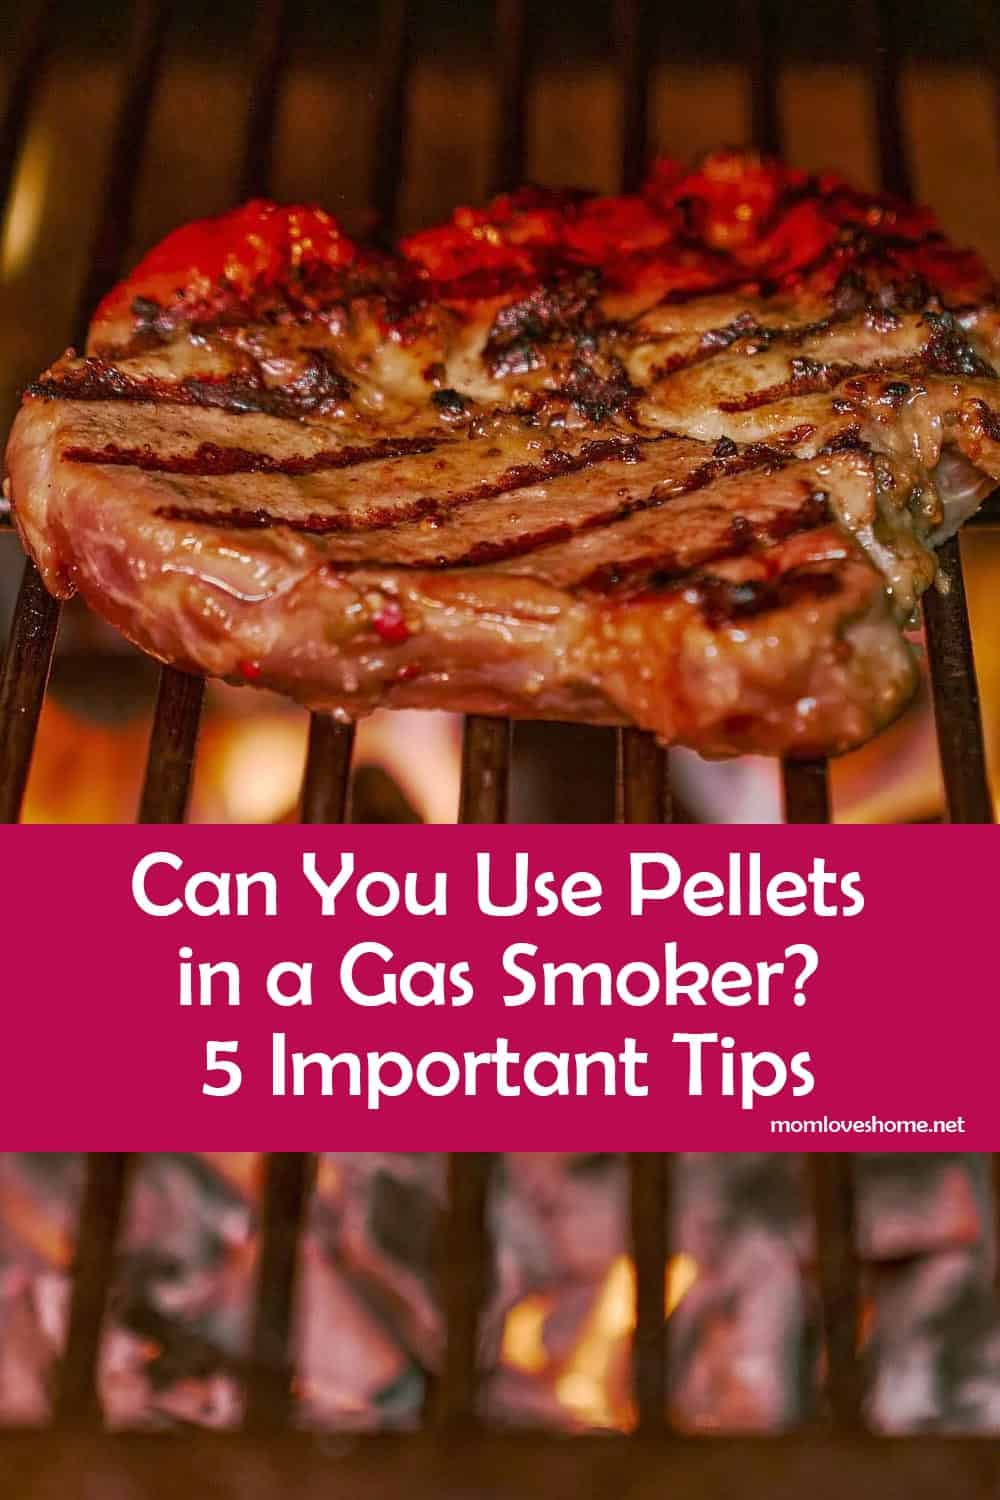 Can You Use Pellets in a Gas Smoker